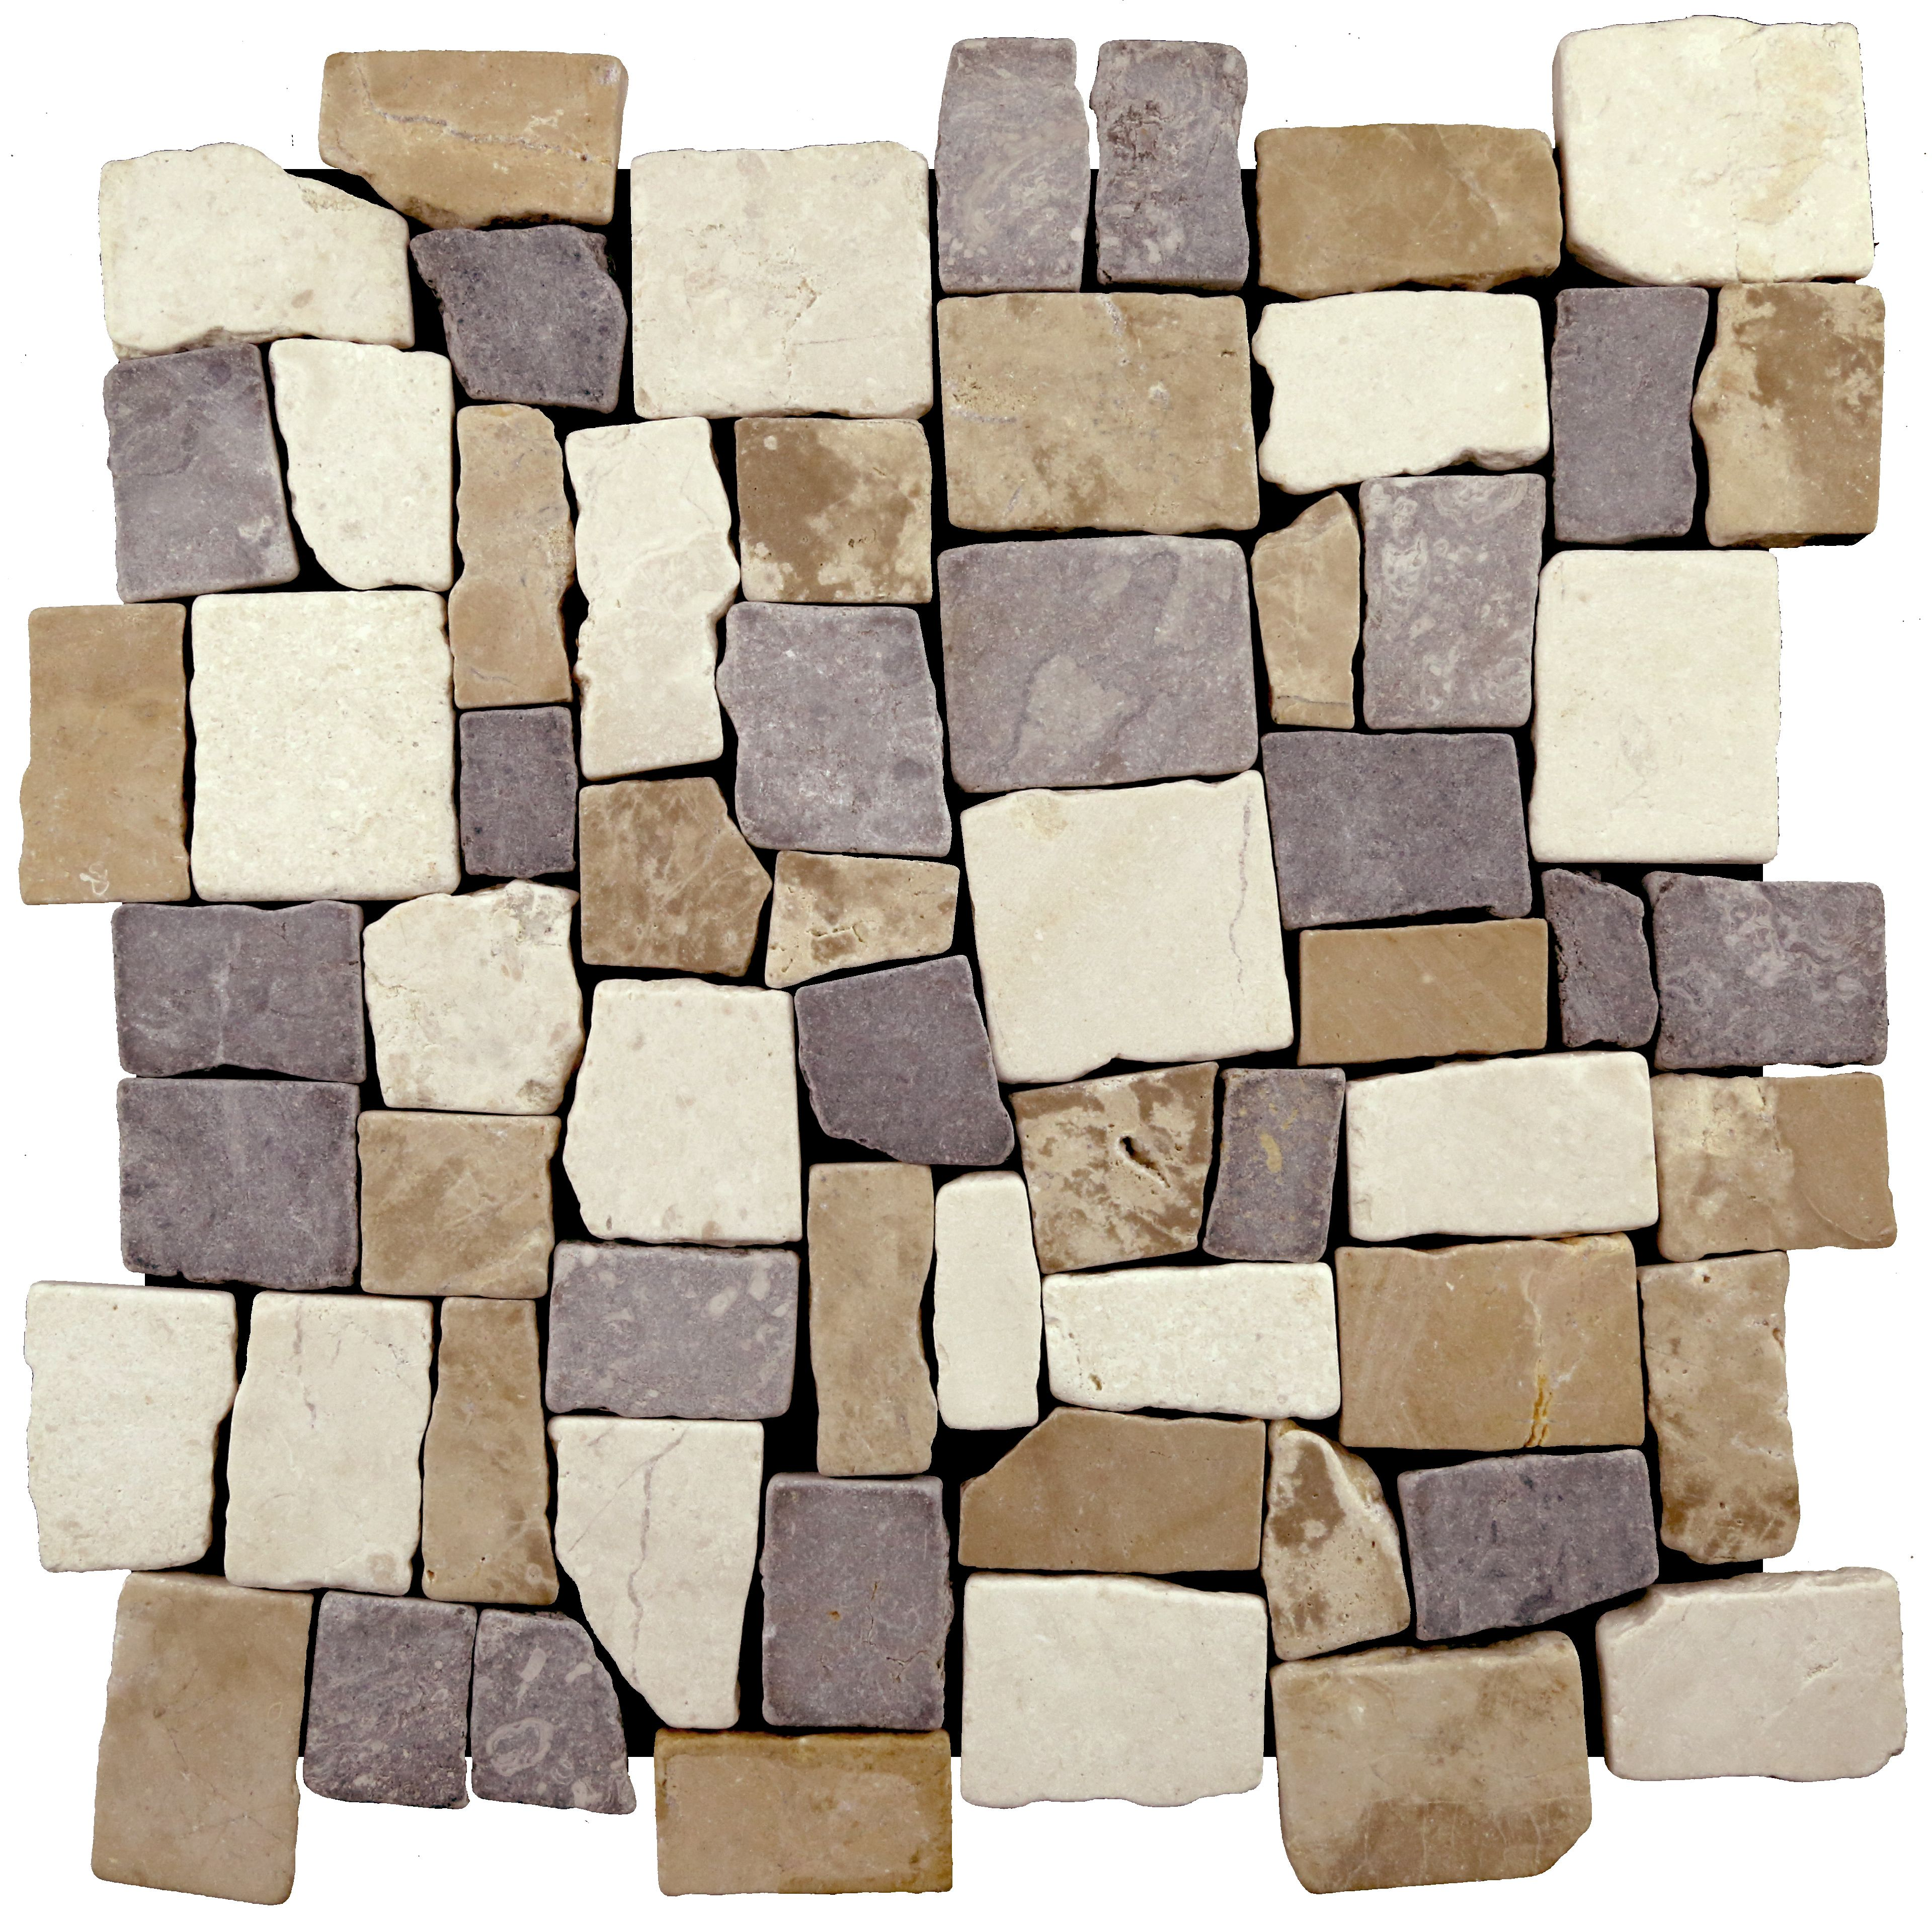 Easy To Install Mesh Backed Interlocking Natural Stone Tile Made Out Of High Quality Indonesian Stone Mosaic Tile Marble Mosaic Tiles Natural Stone Flooring